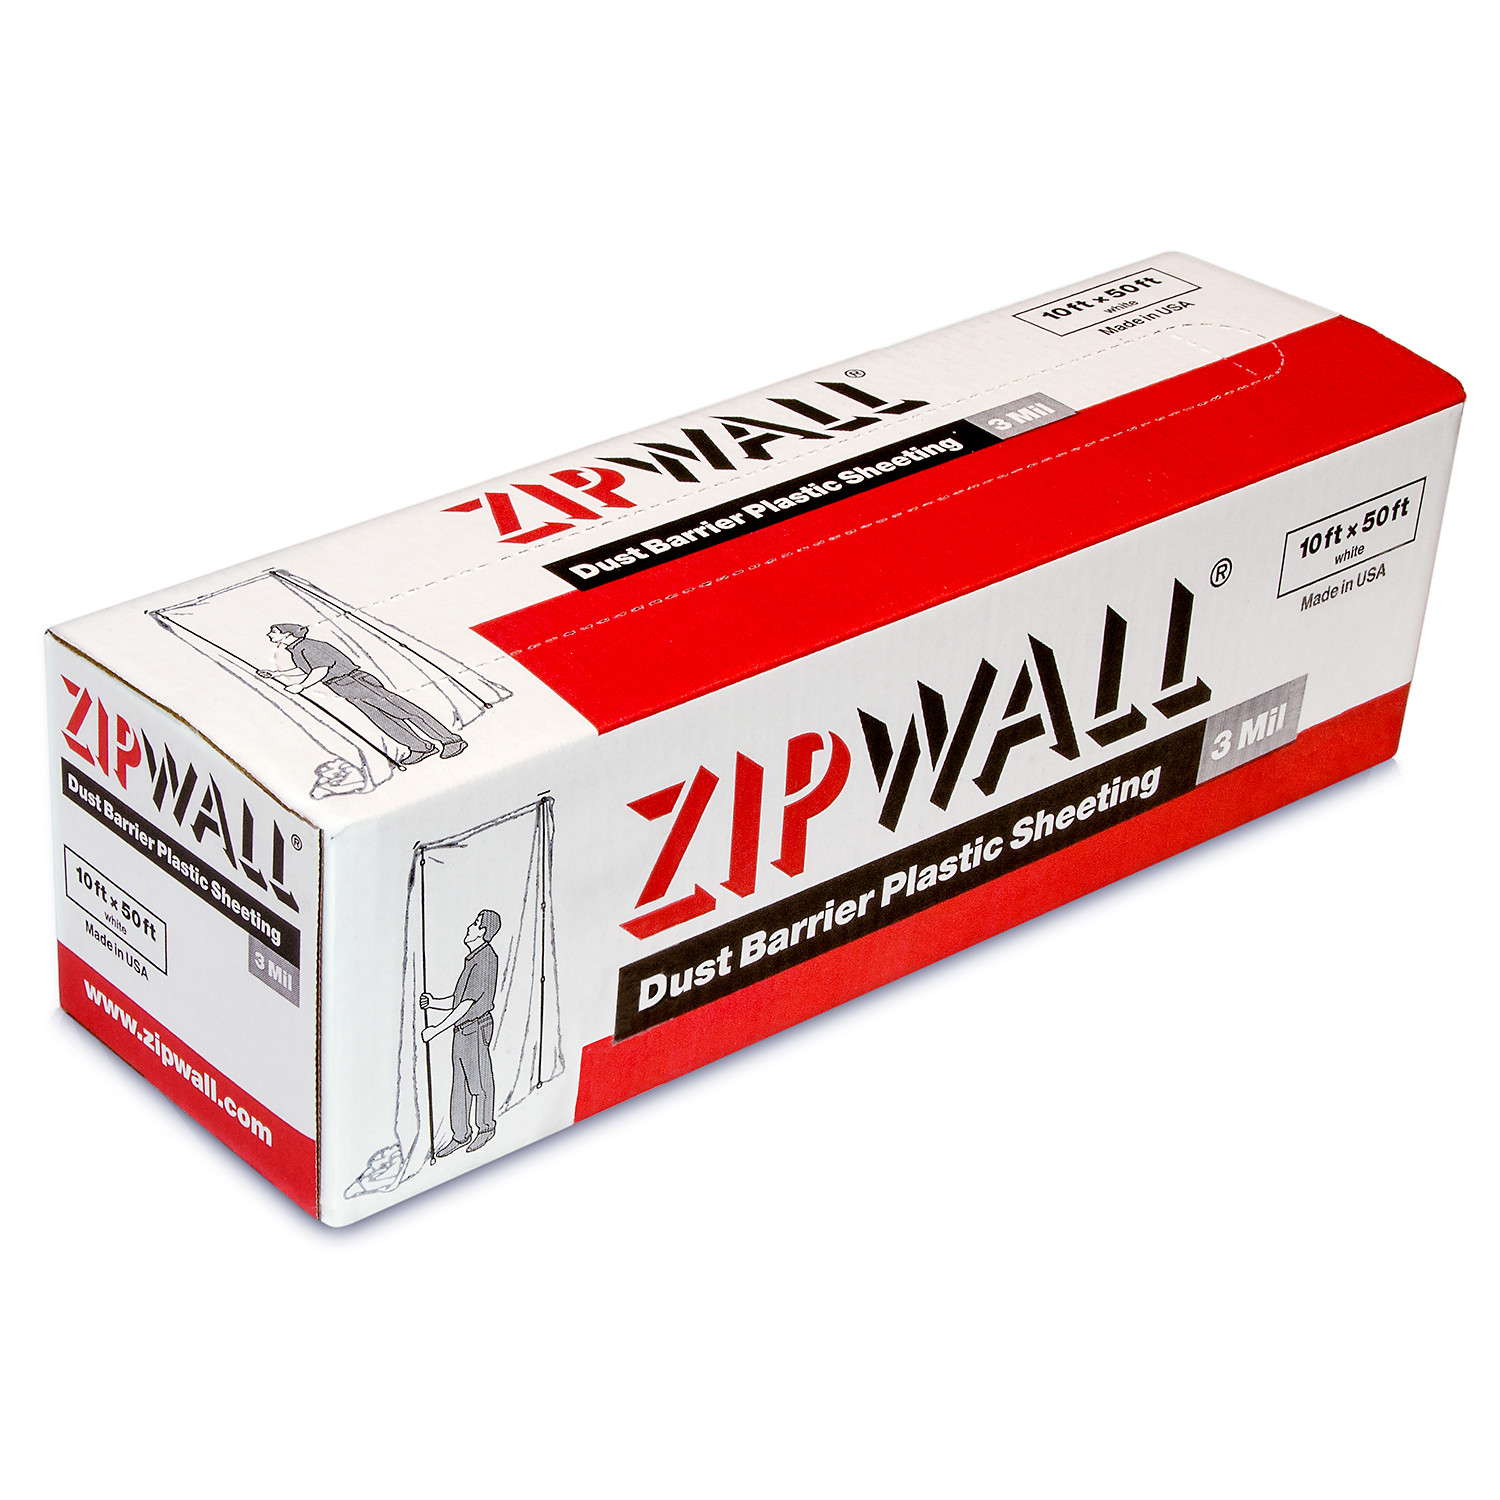 ZipWall Dust Barrier Plastic Sheeting